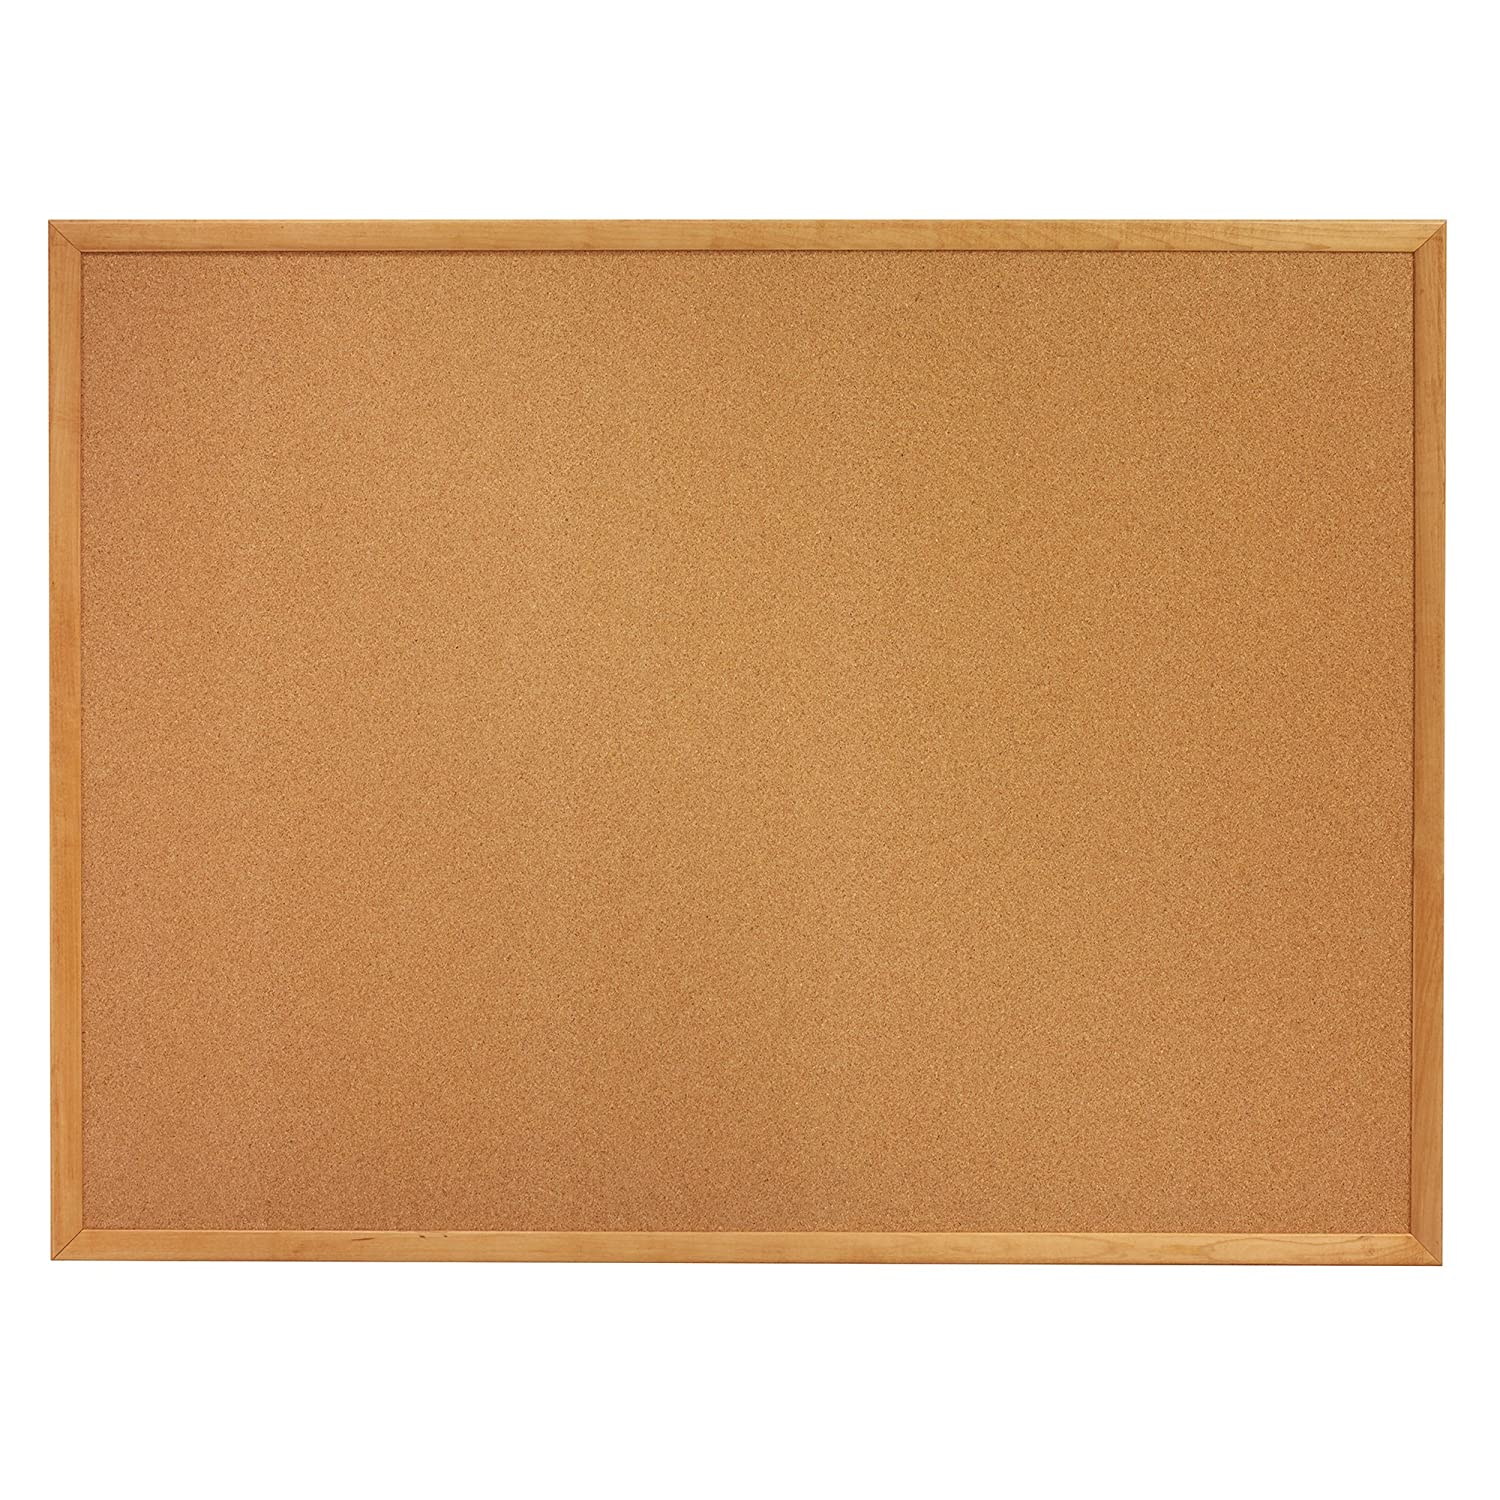 quartet cork bulletin board 4 x 3 feet corkboard oak finish frame 304